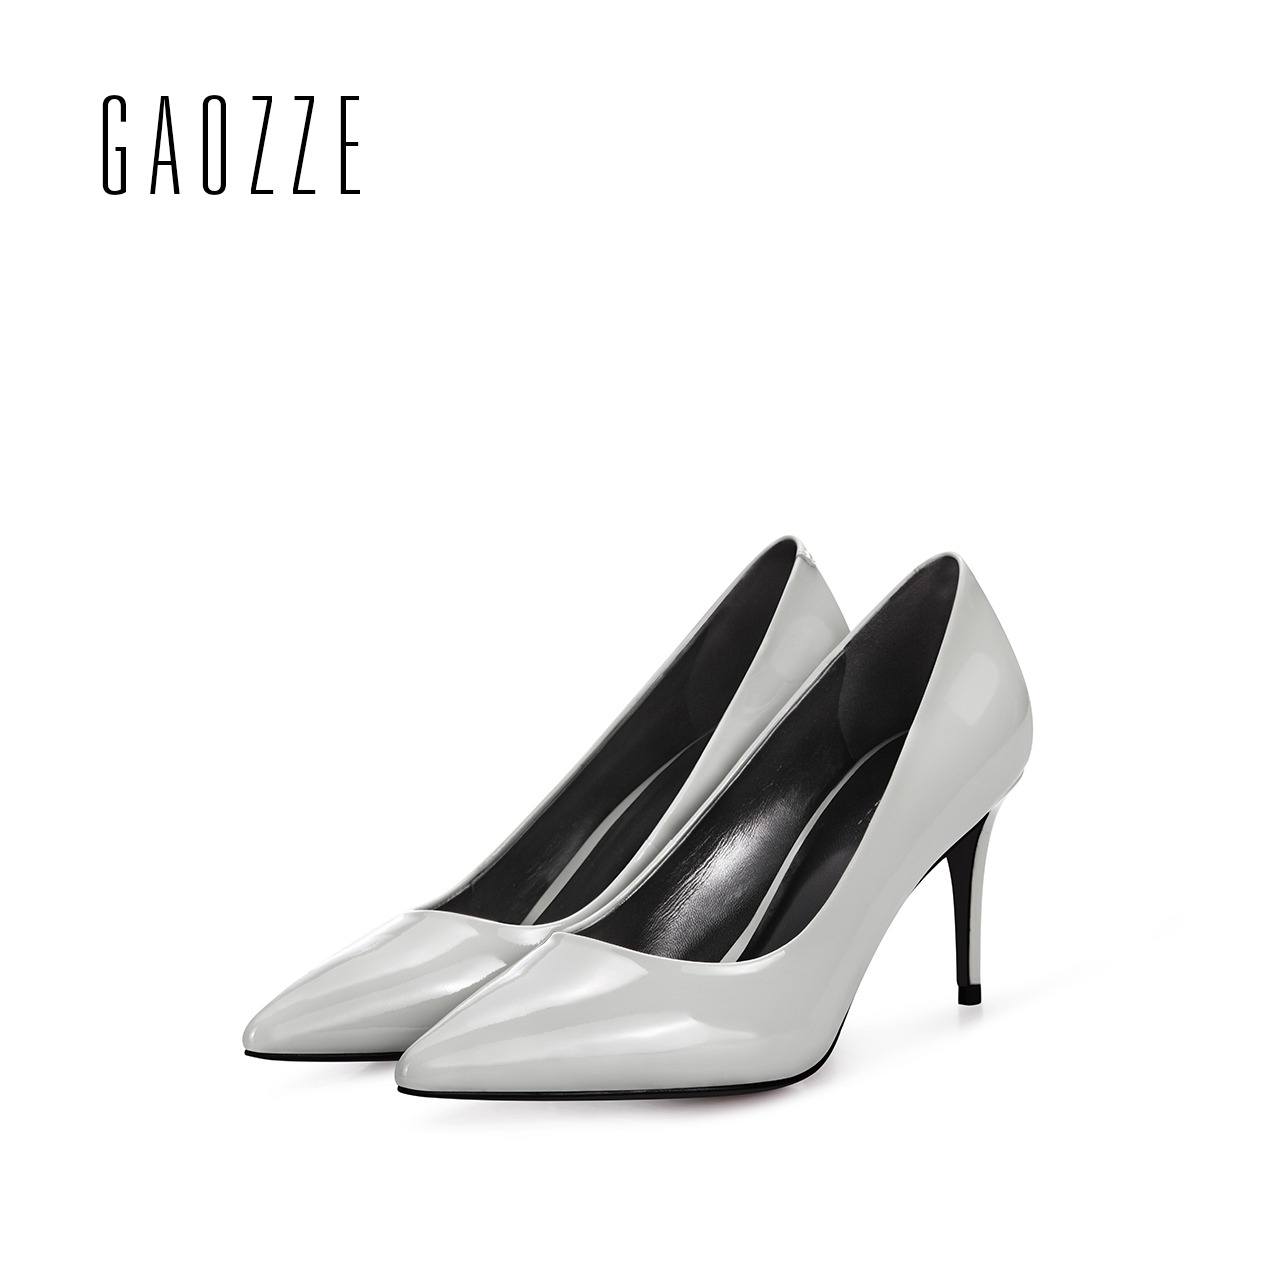 GAOZZE women high heels pumps shoes summer women Genuine Leather office dress shoes female sexy pointed toe high heels 7.5CM women shoes genuine leather pointed toe high heels women pumps shoes 2018 brand new fashion sexy red women office shoes 2588 a01